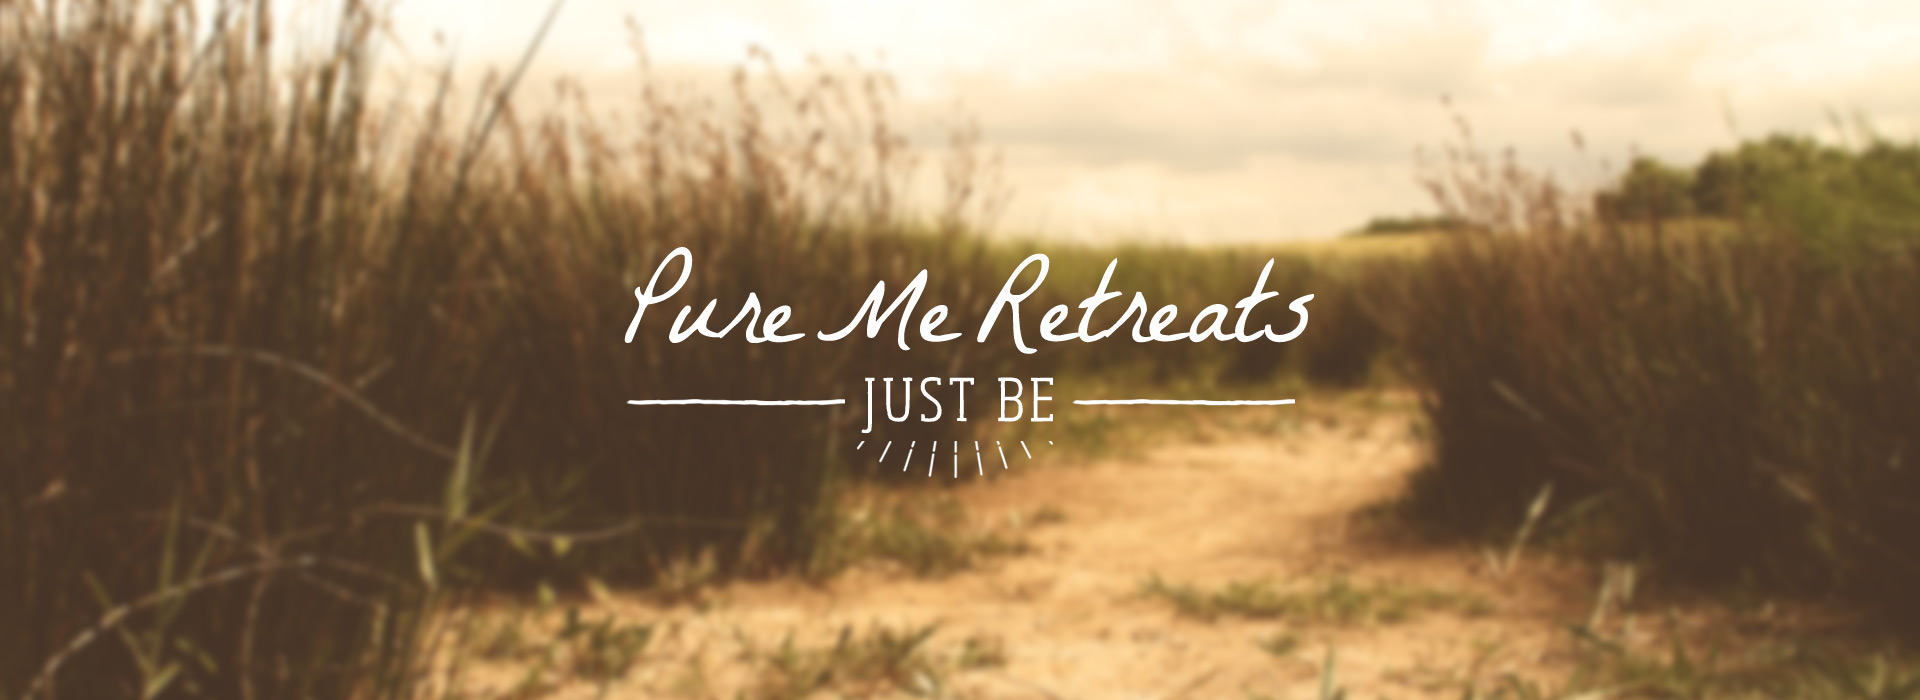 Pure-Me-Retreats-slider5